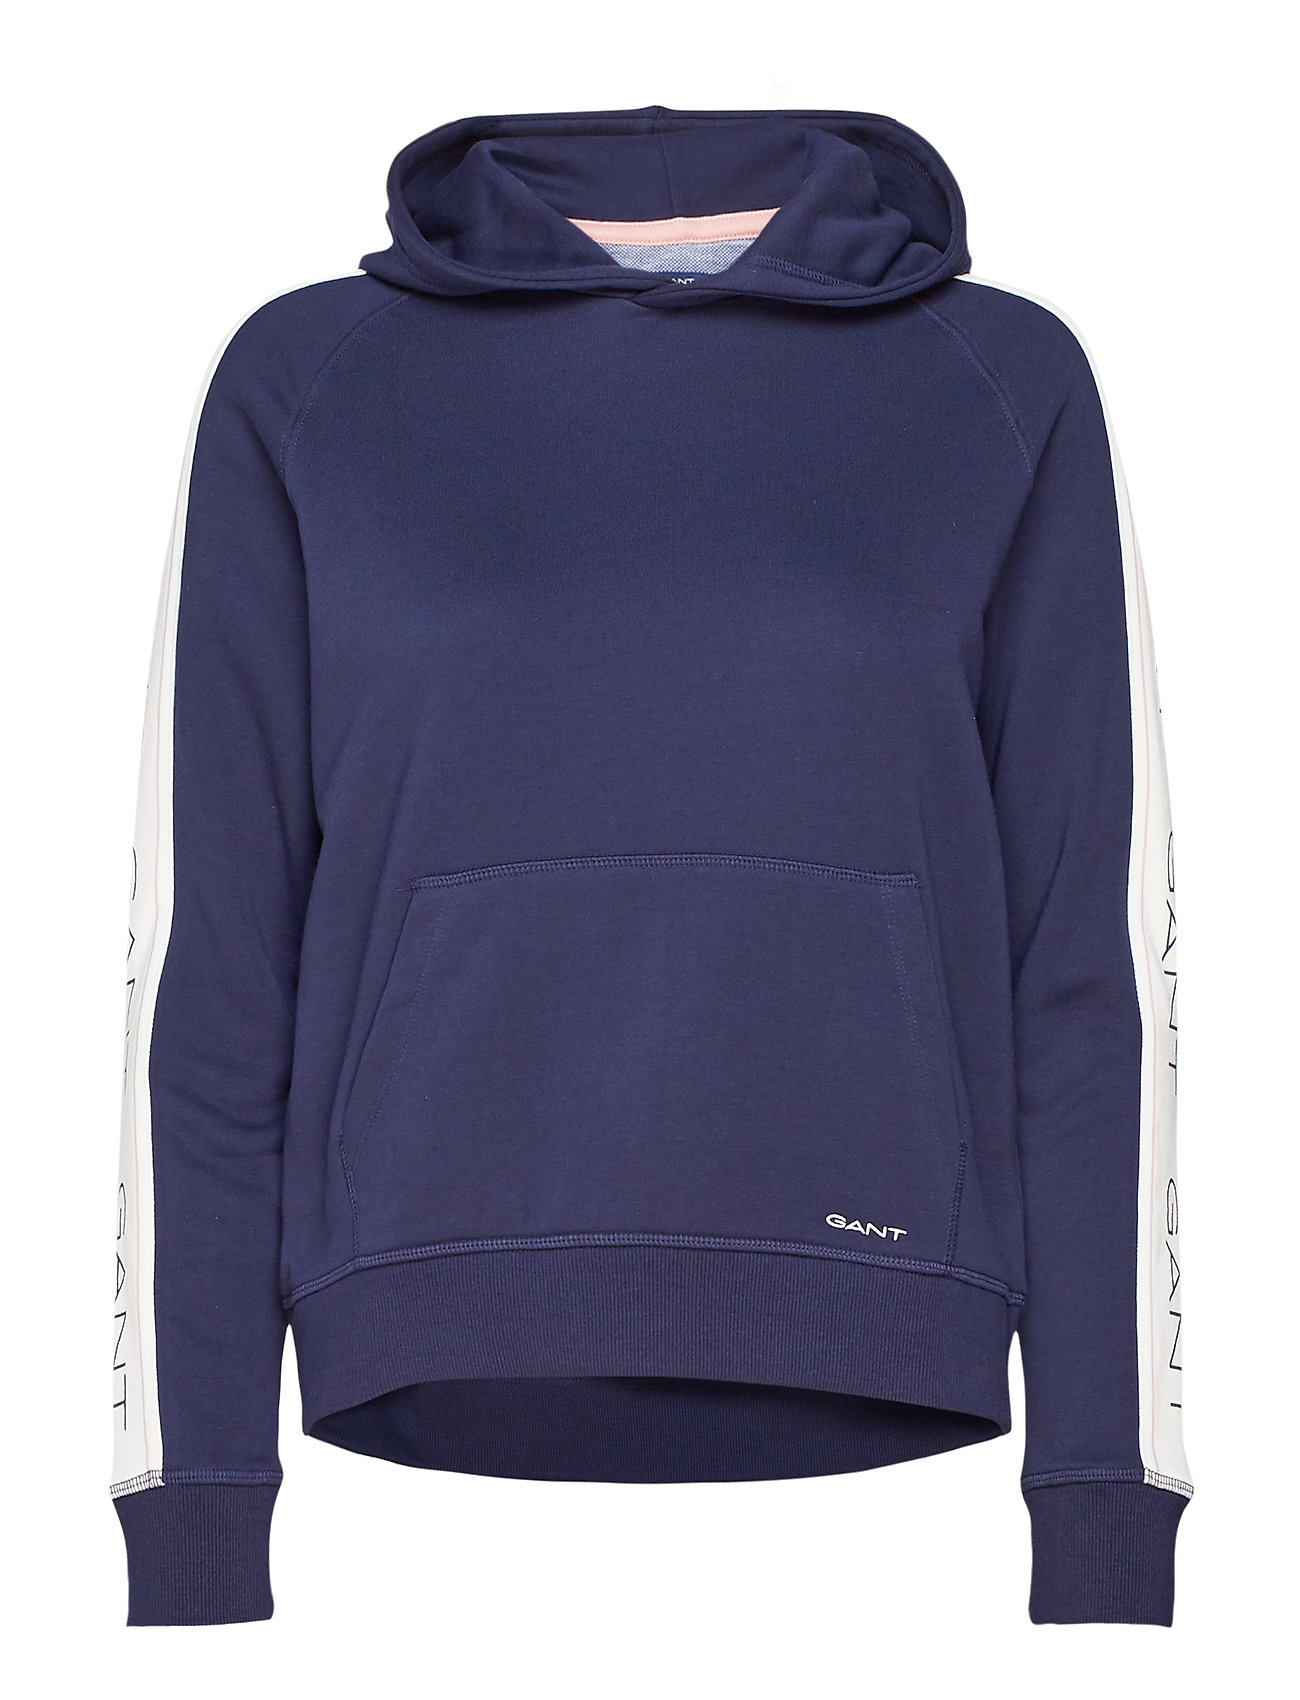 GANT O1. GANT ICON SWEAT HOODIE - EVENING BLUE